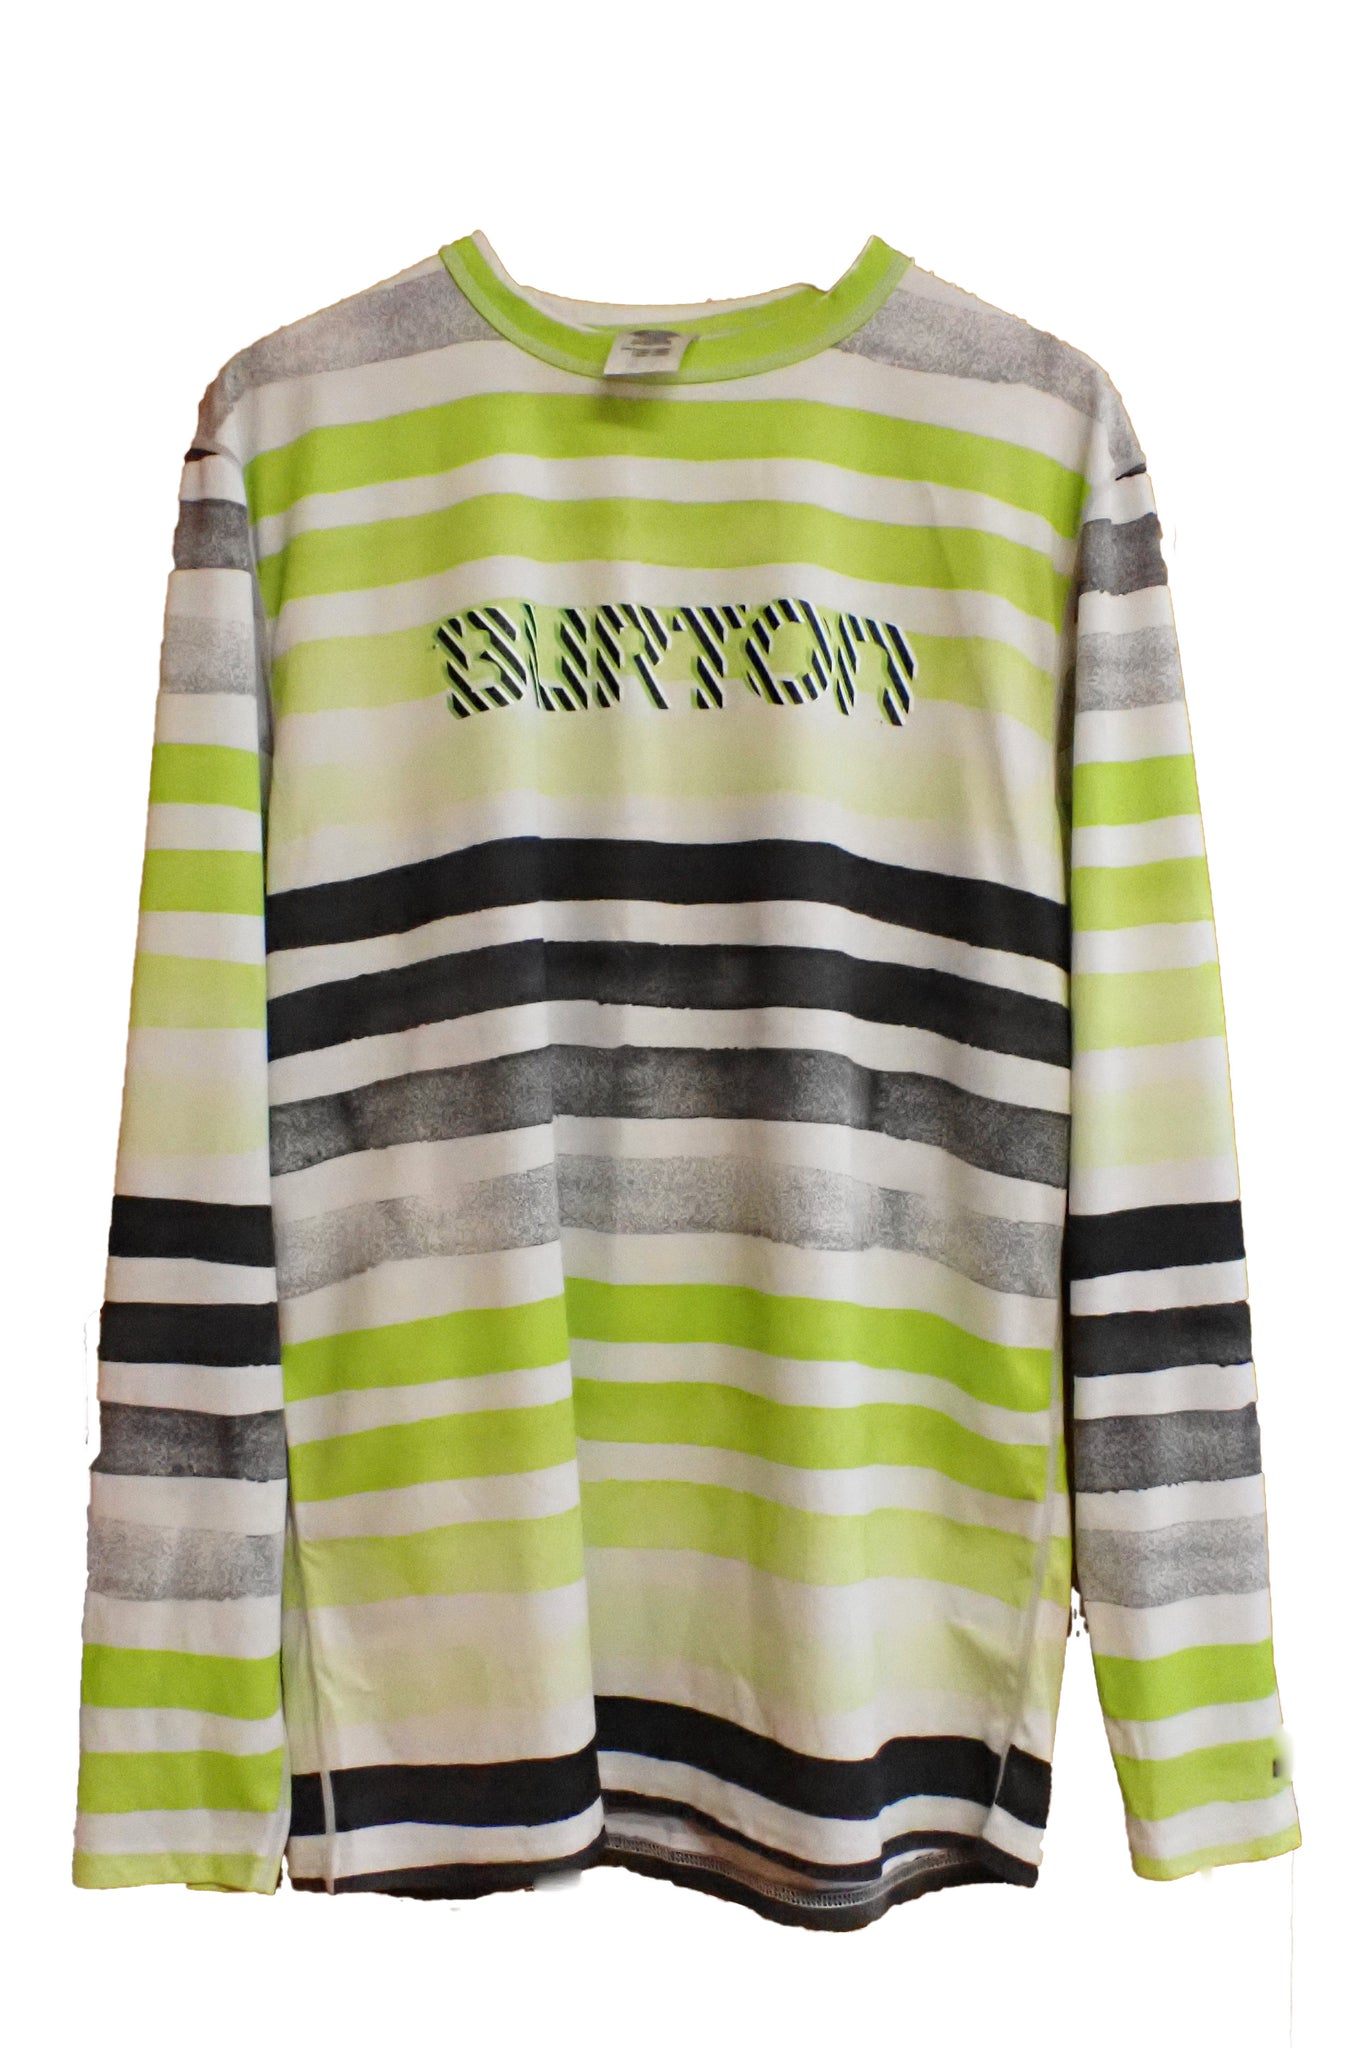 Burton Dryride men's base layer top front